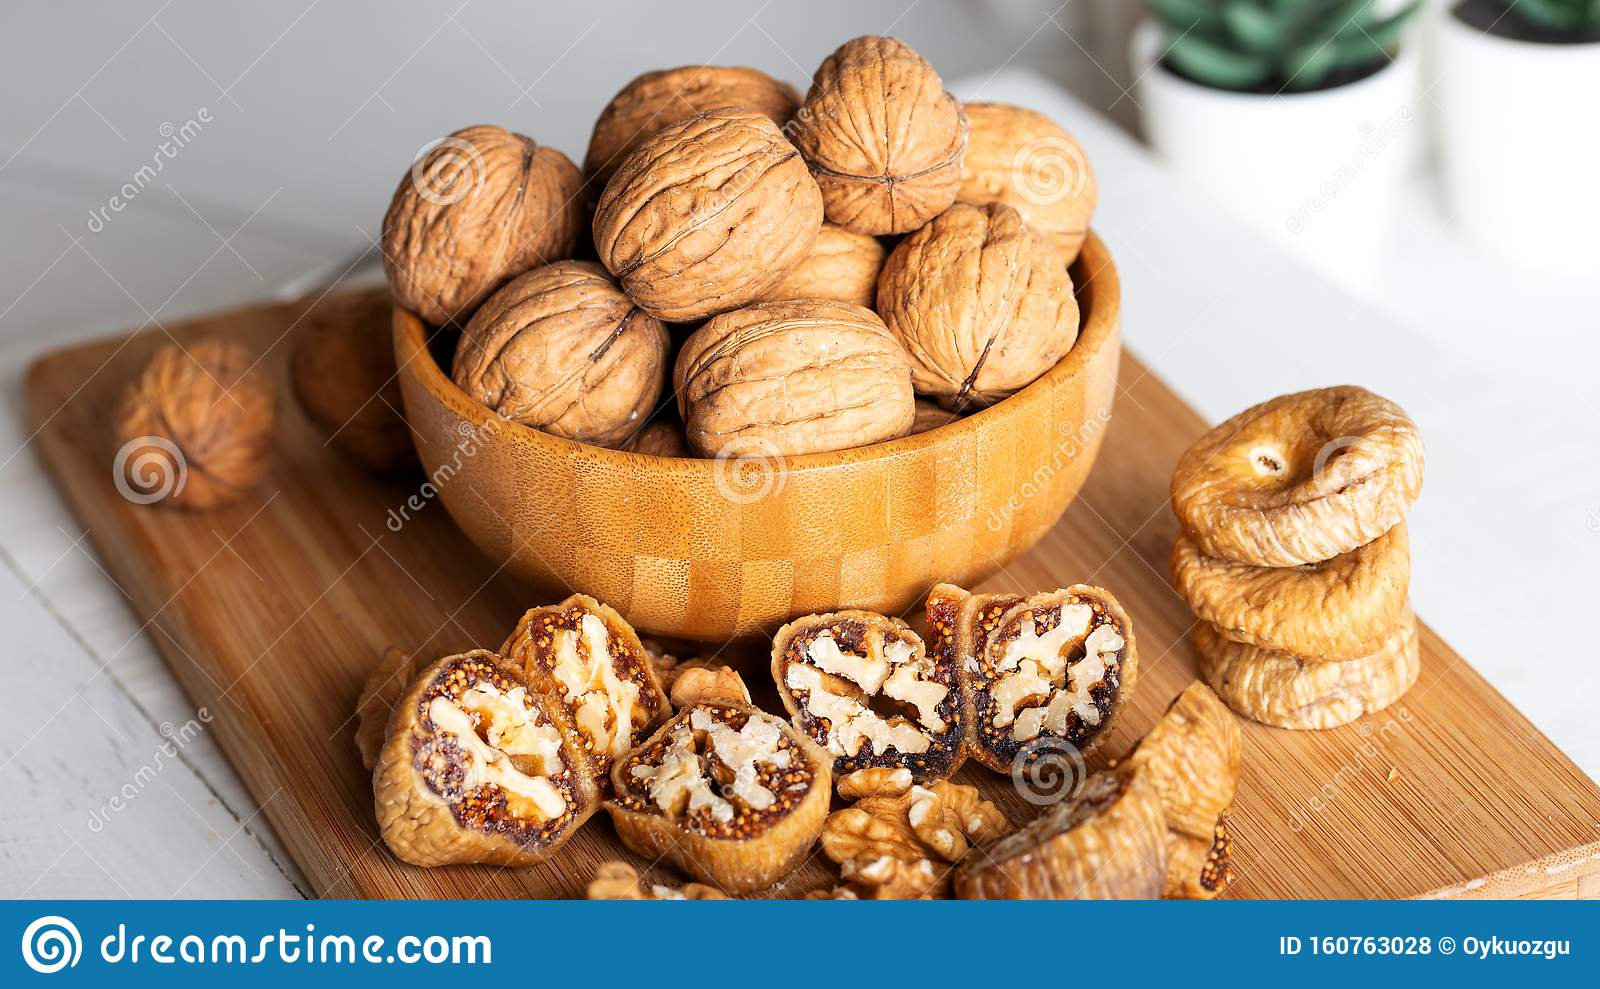 Whole Walnuts In Bowl. Dried Figs With Walnuts On Wooden Background Stock Photo